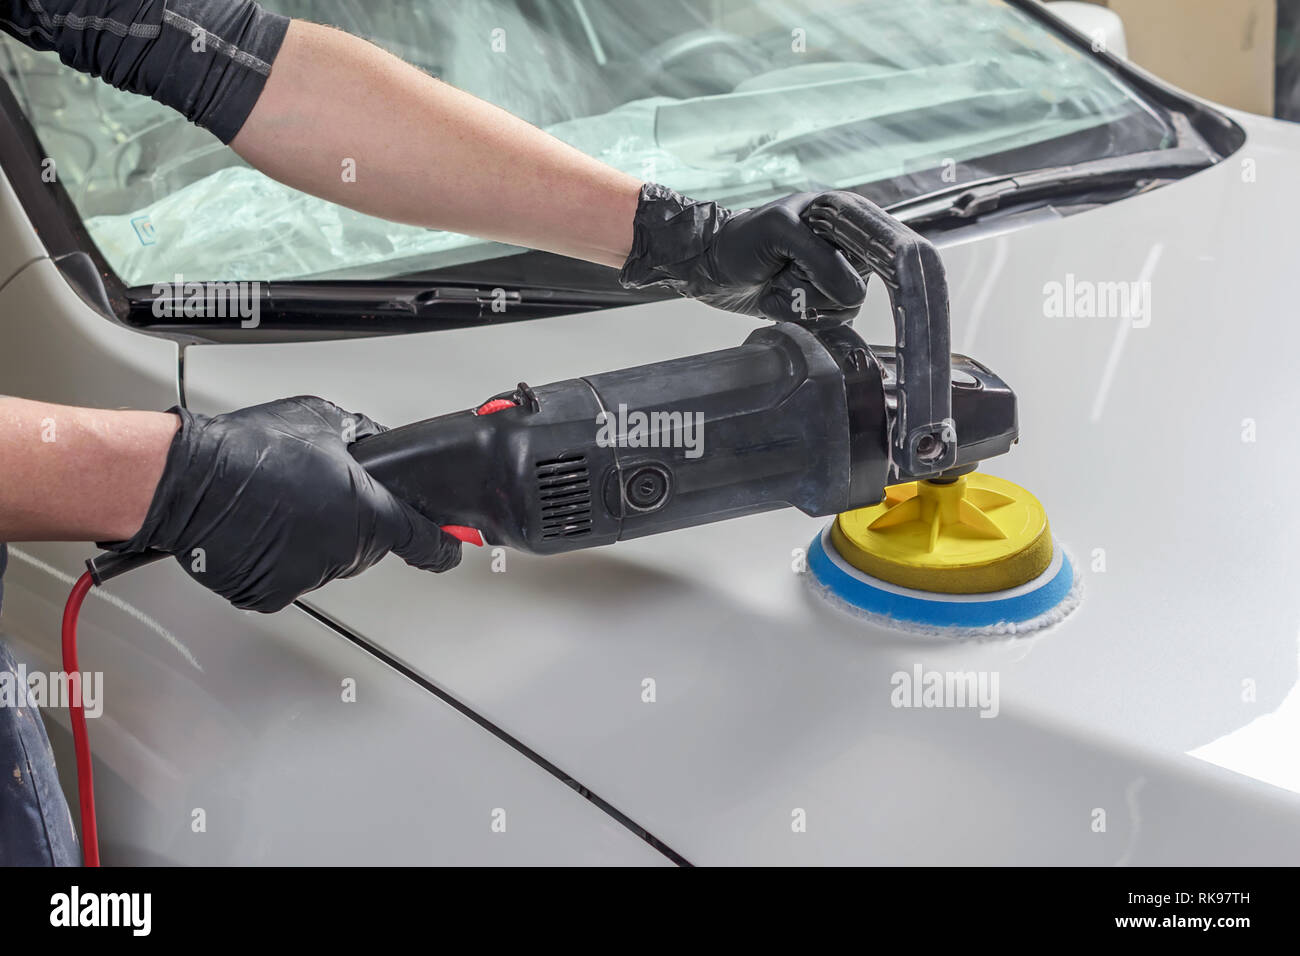 Man holds a polisher in the hand and polishes the car Stock Photo